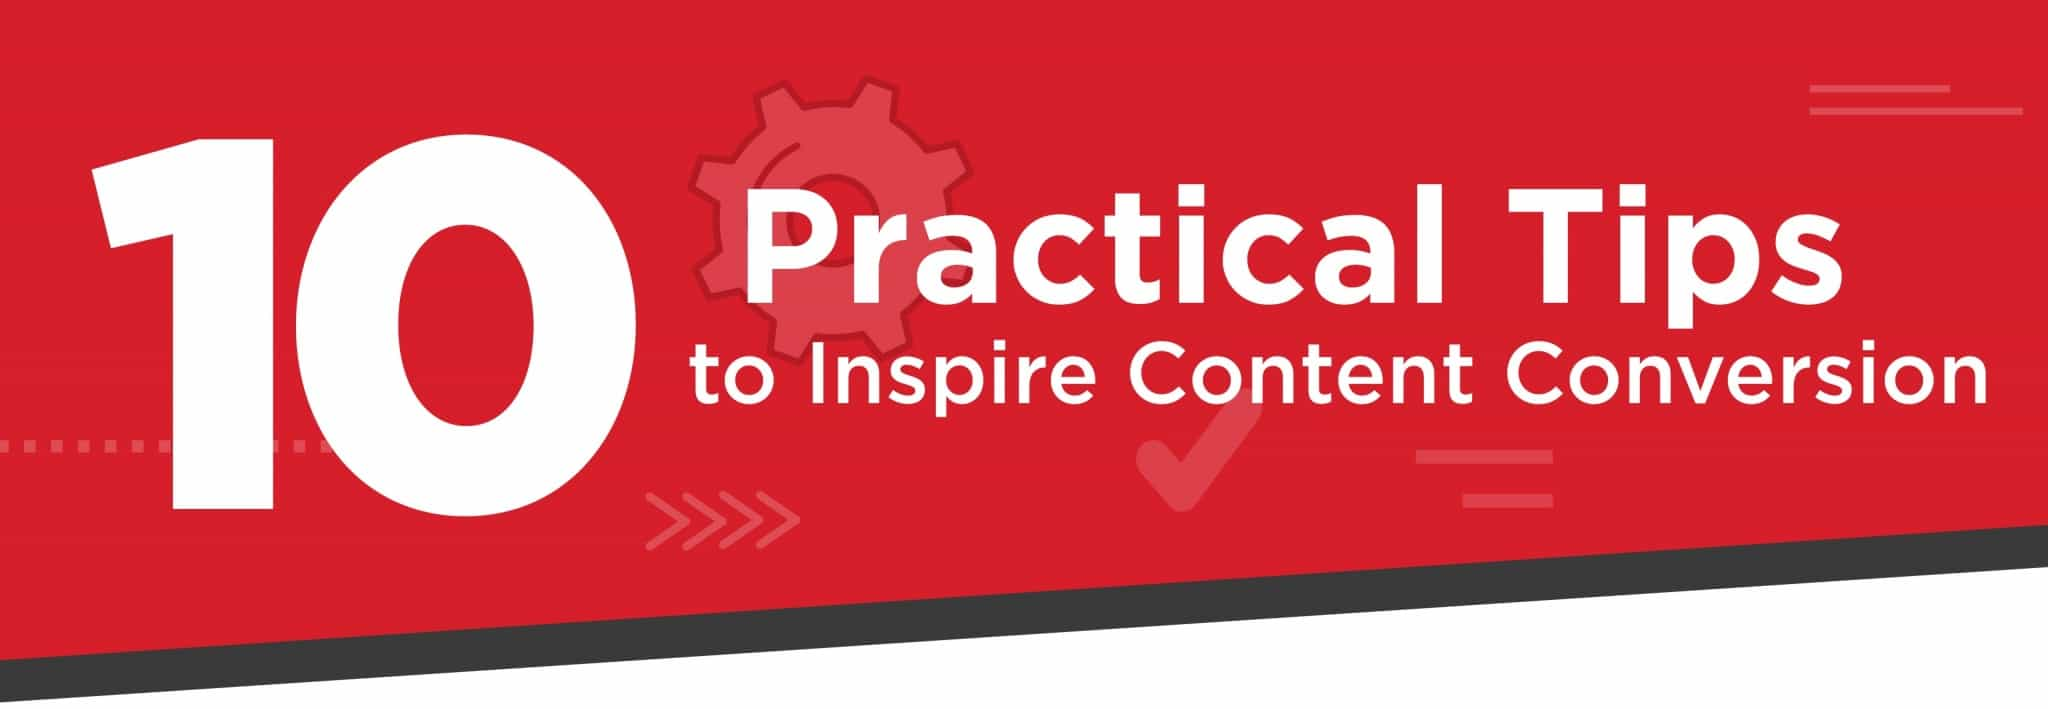 10 Practical Tips to Inspire Content Conversion